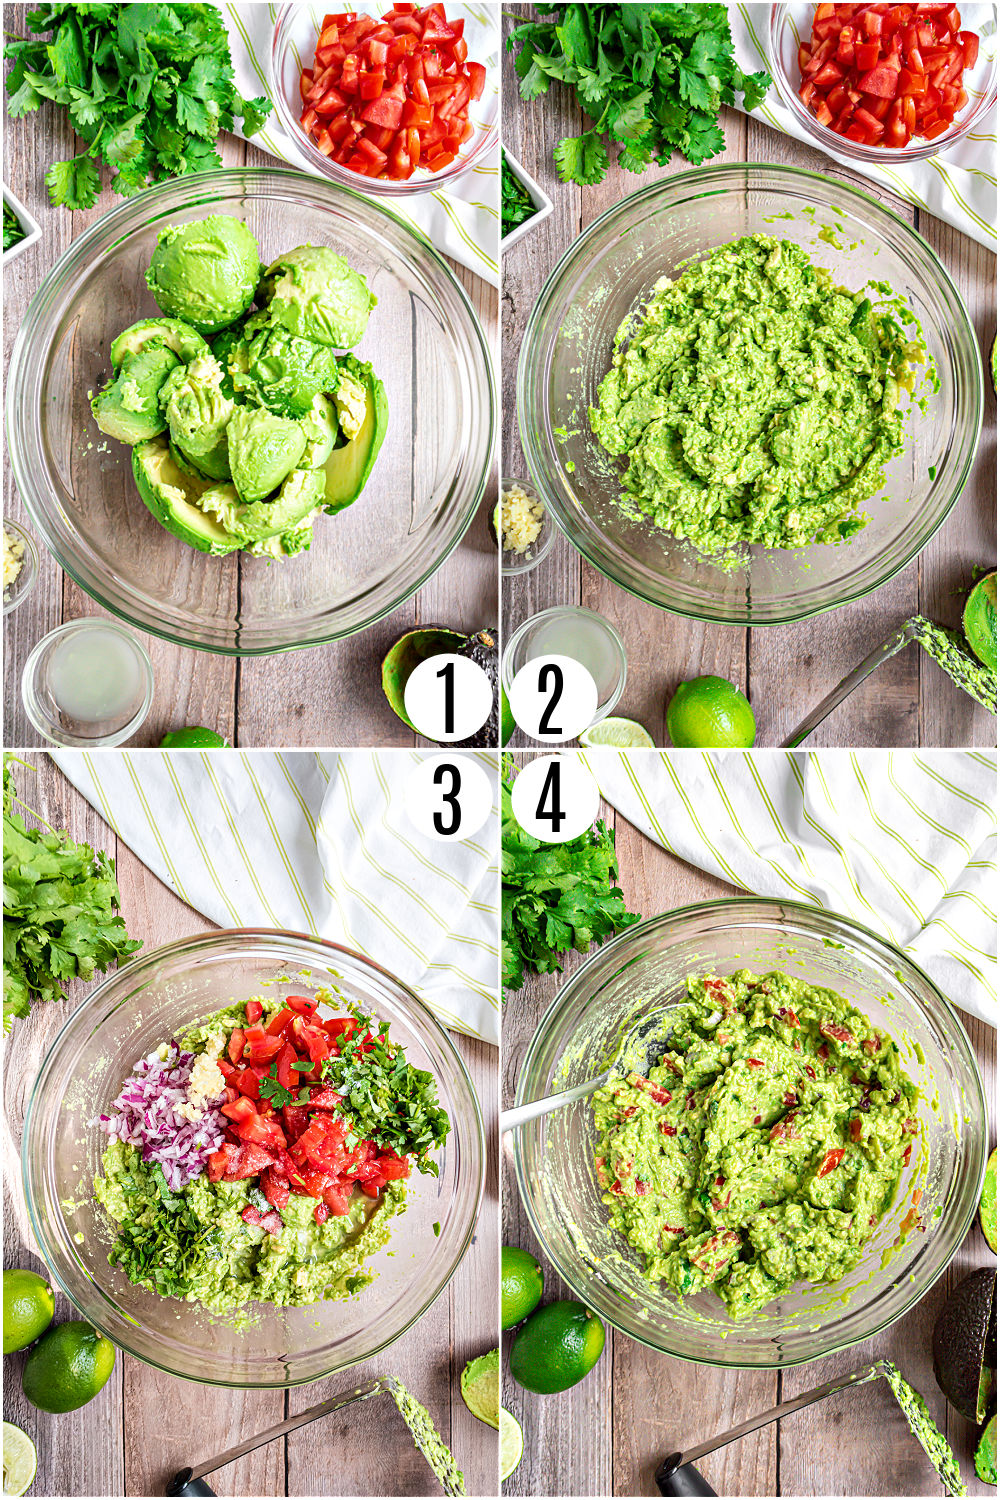 Step by step photos showing how to make chunky guacamole.